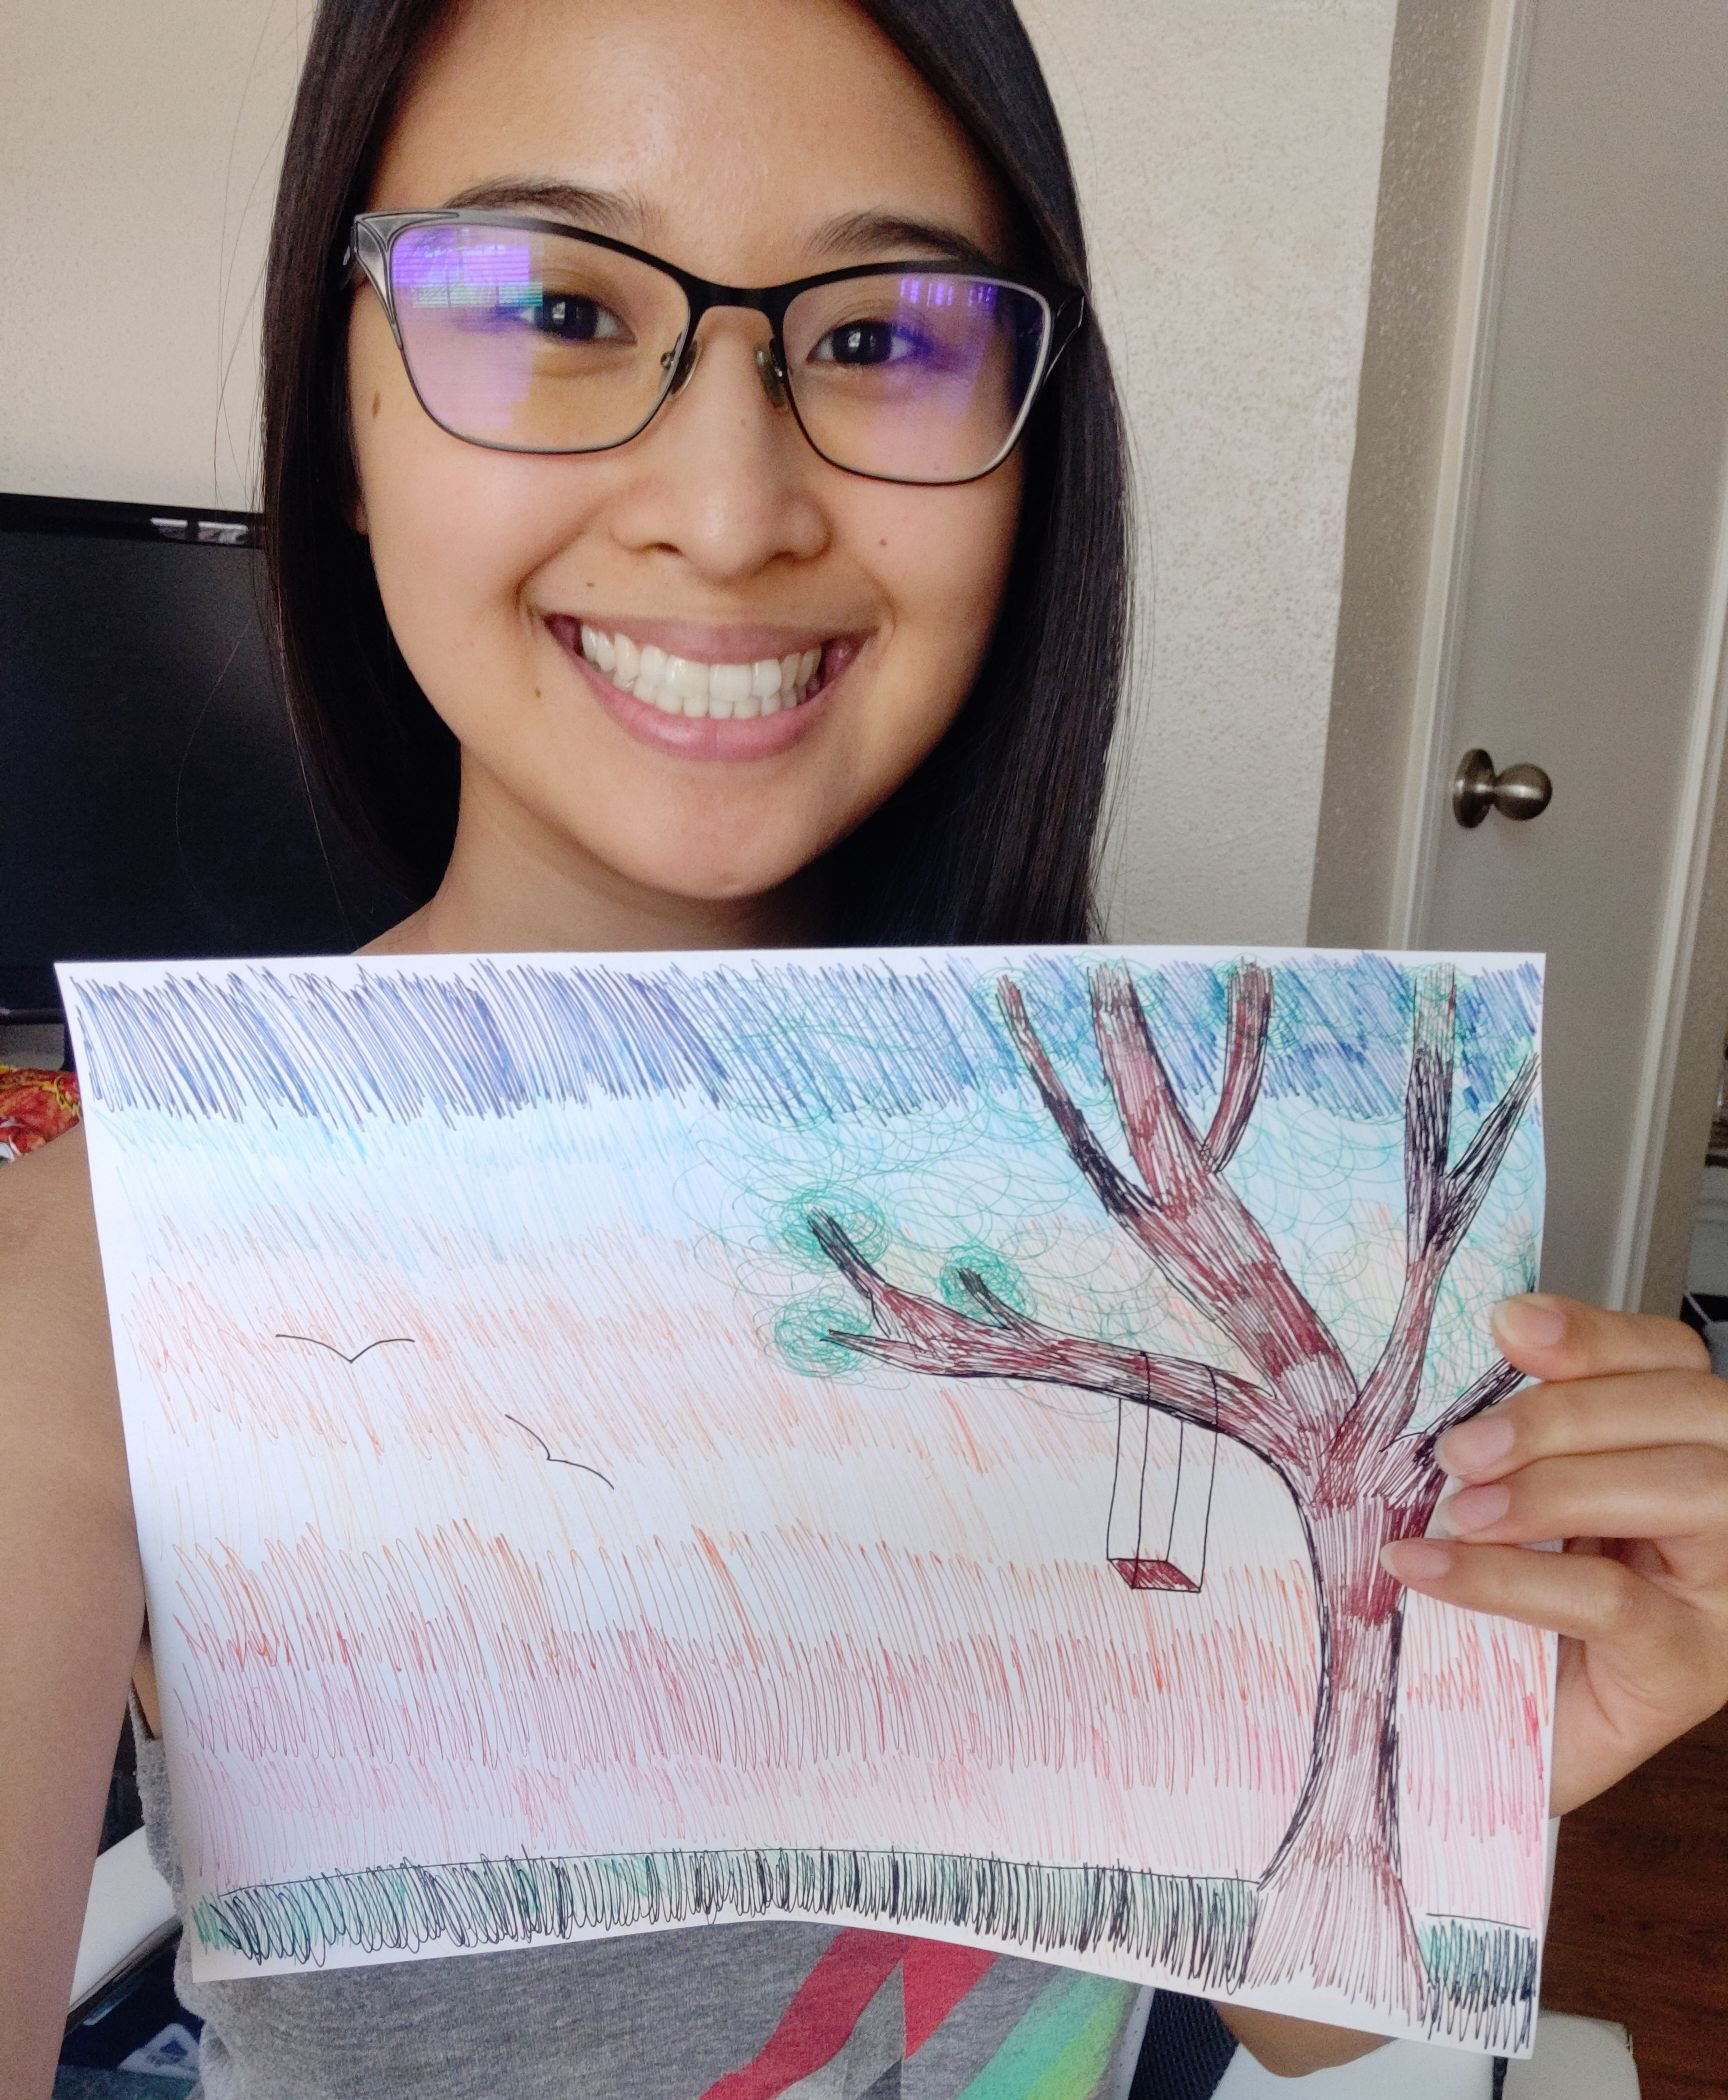 Dental student Joy Nisnisan used different colored pens as an alternative to paint brushes.